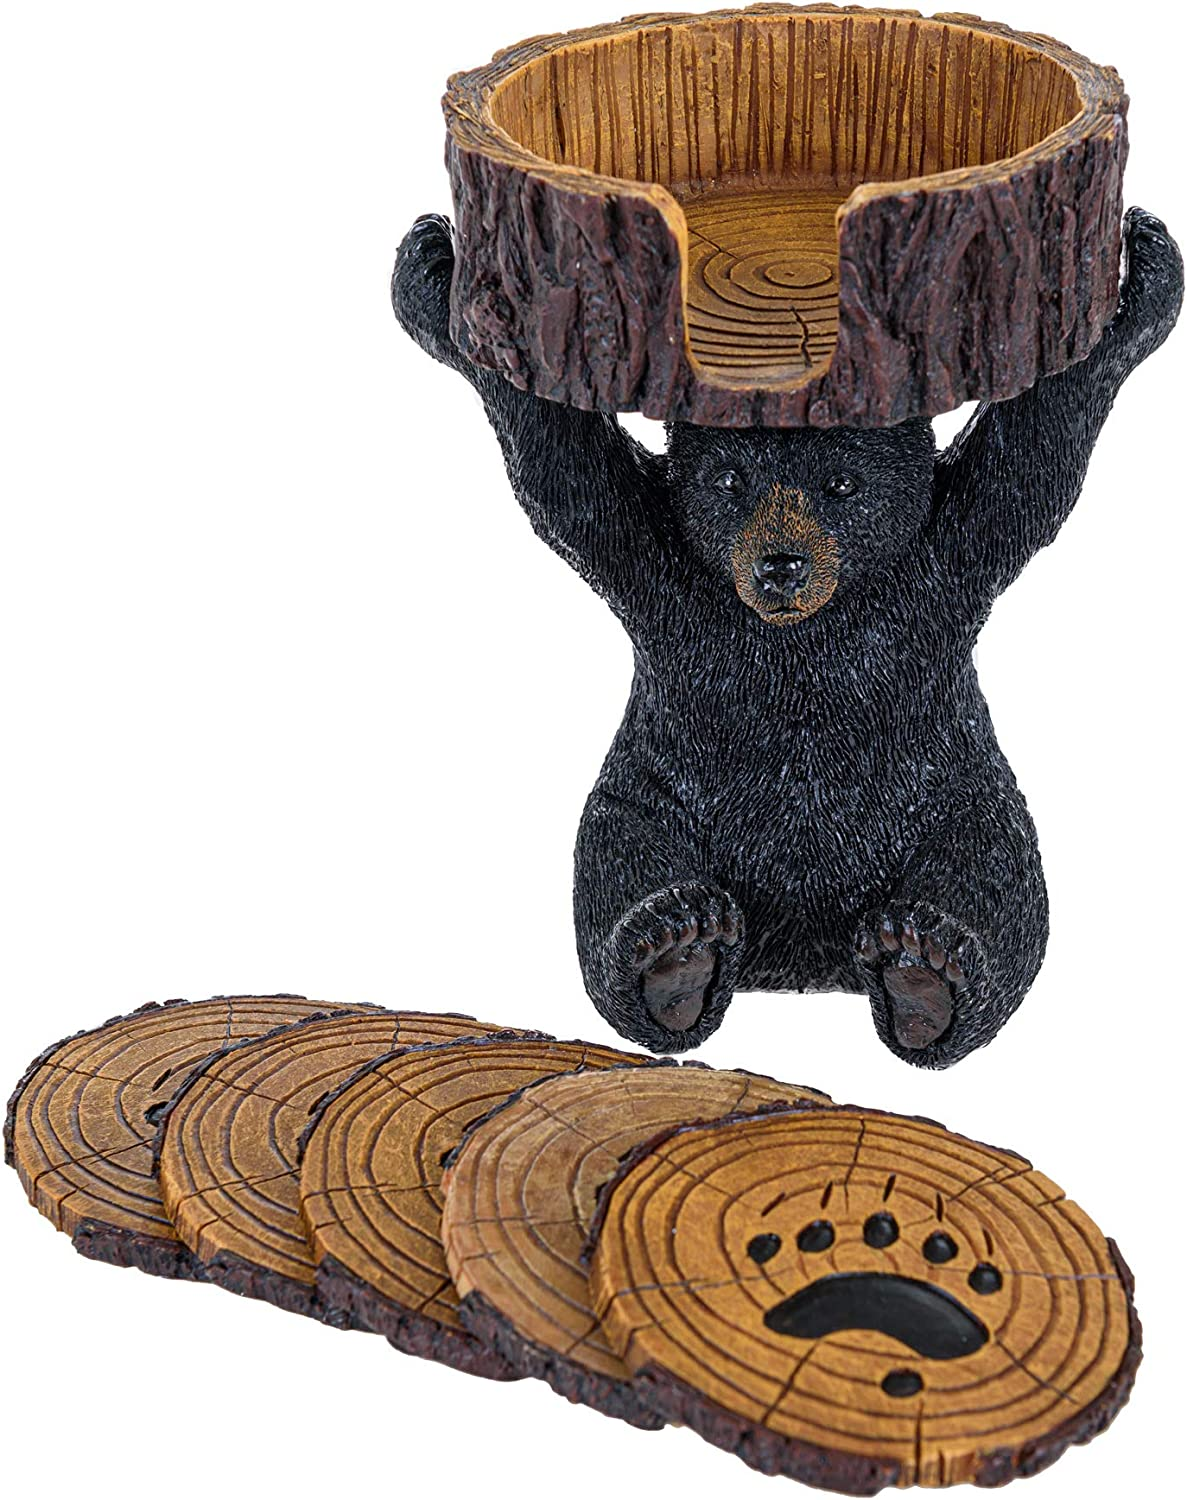 Black Bear Coasters Set - Coasters with Holder Rustic Home Decorations - Home Bar Accessories and Decor Wine Bottle Holder Bear Gifts Vintage Drink Coasters - Bear Items Coffee Table Decor Kitchen